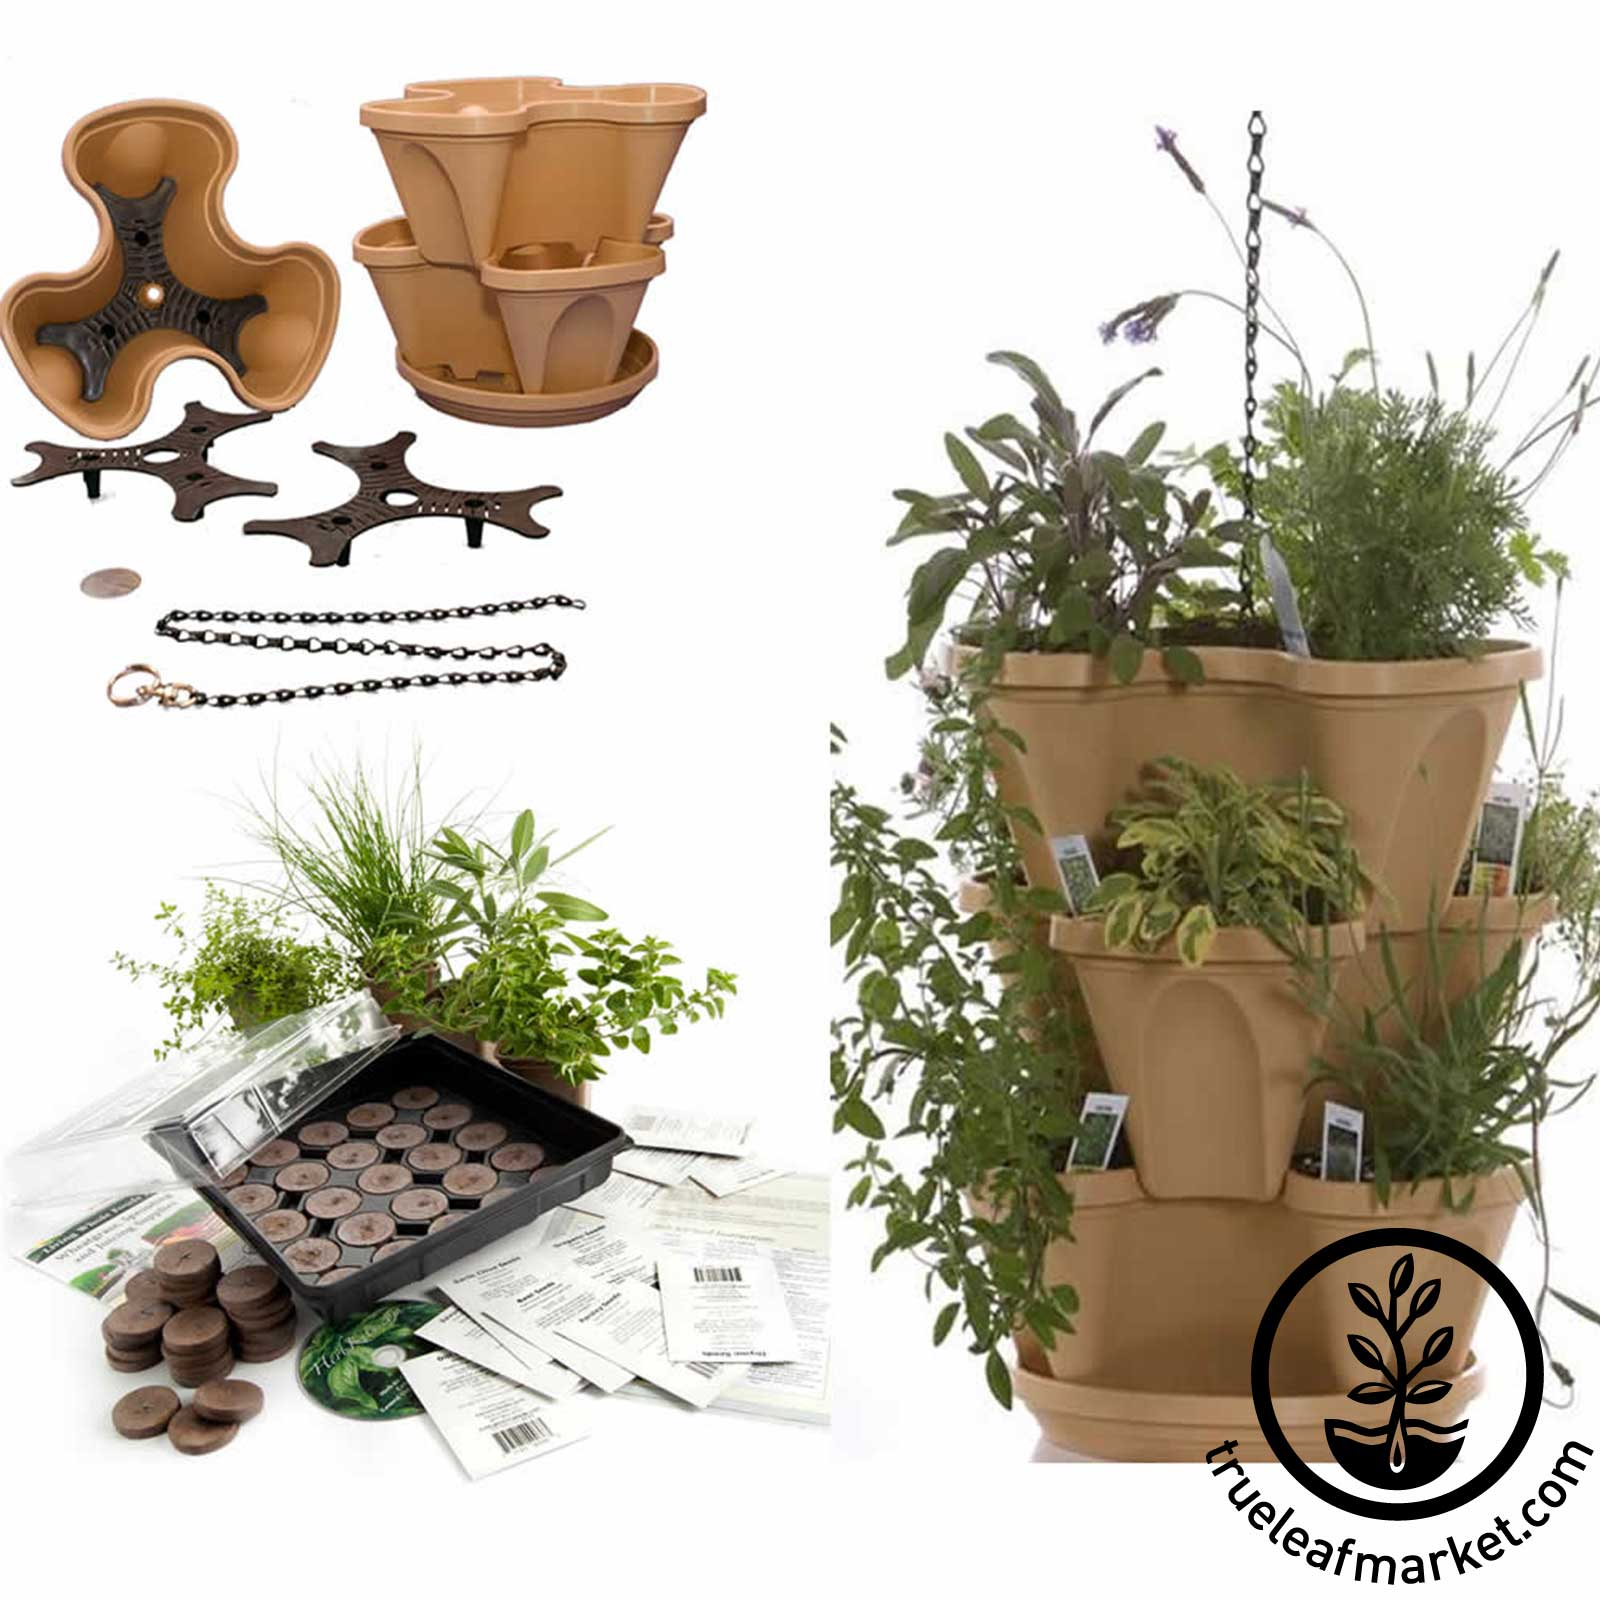 Tuscany Garden Stacker with Medicinal Herb Kit